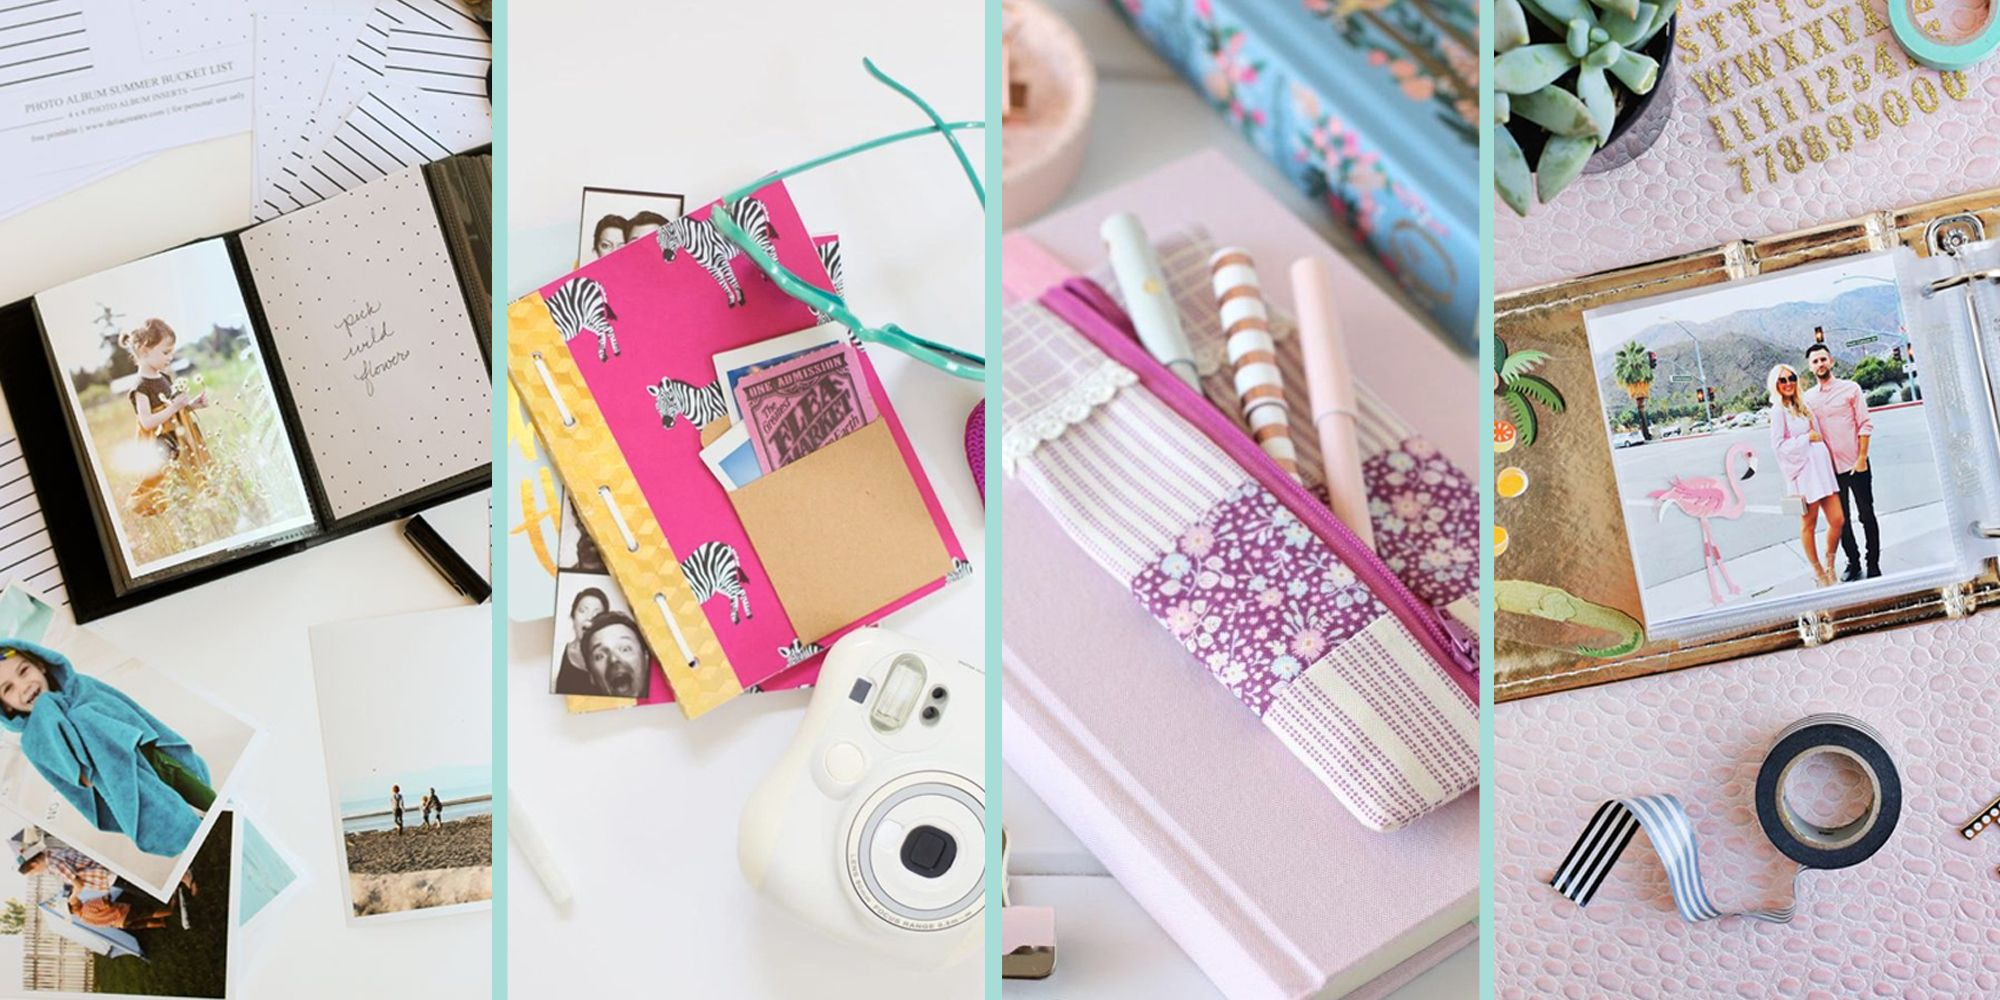 Scrapbooking: 10 basic tips to get started